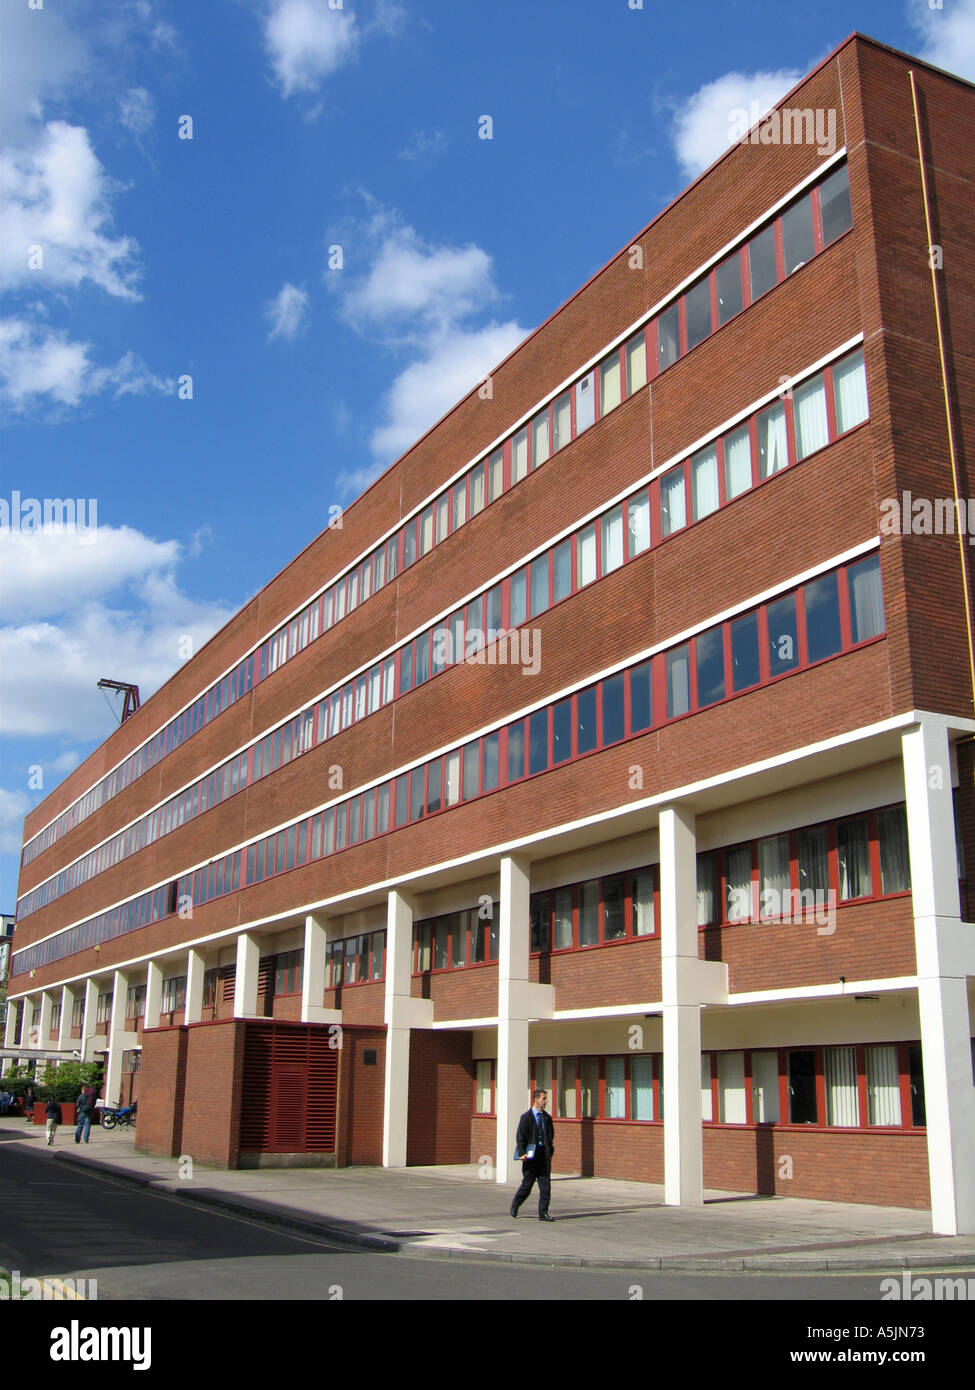 Materials Science Centre The University of Manchester UK - Stock Image